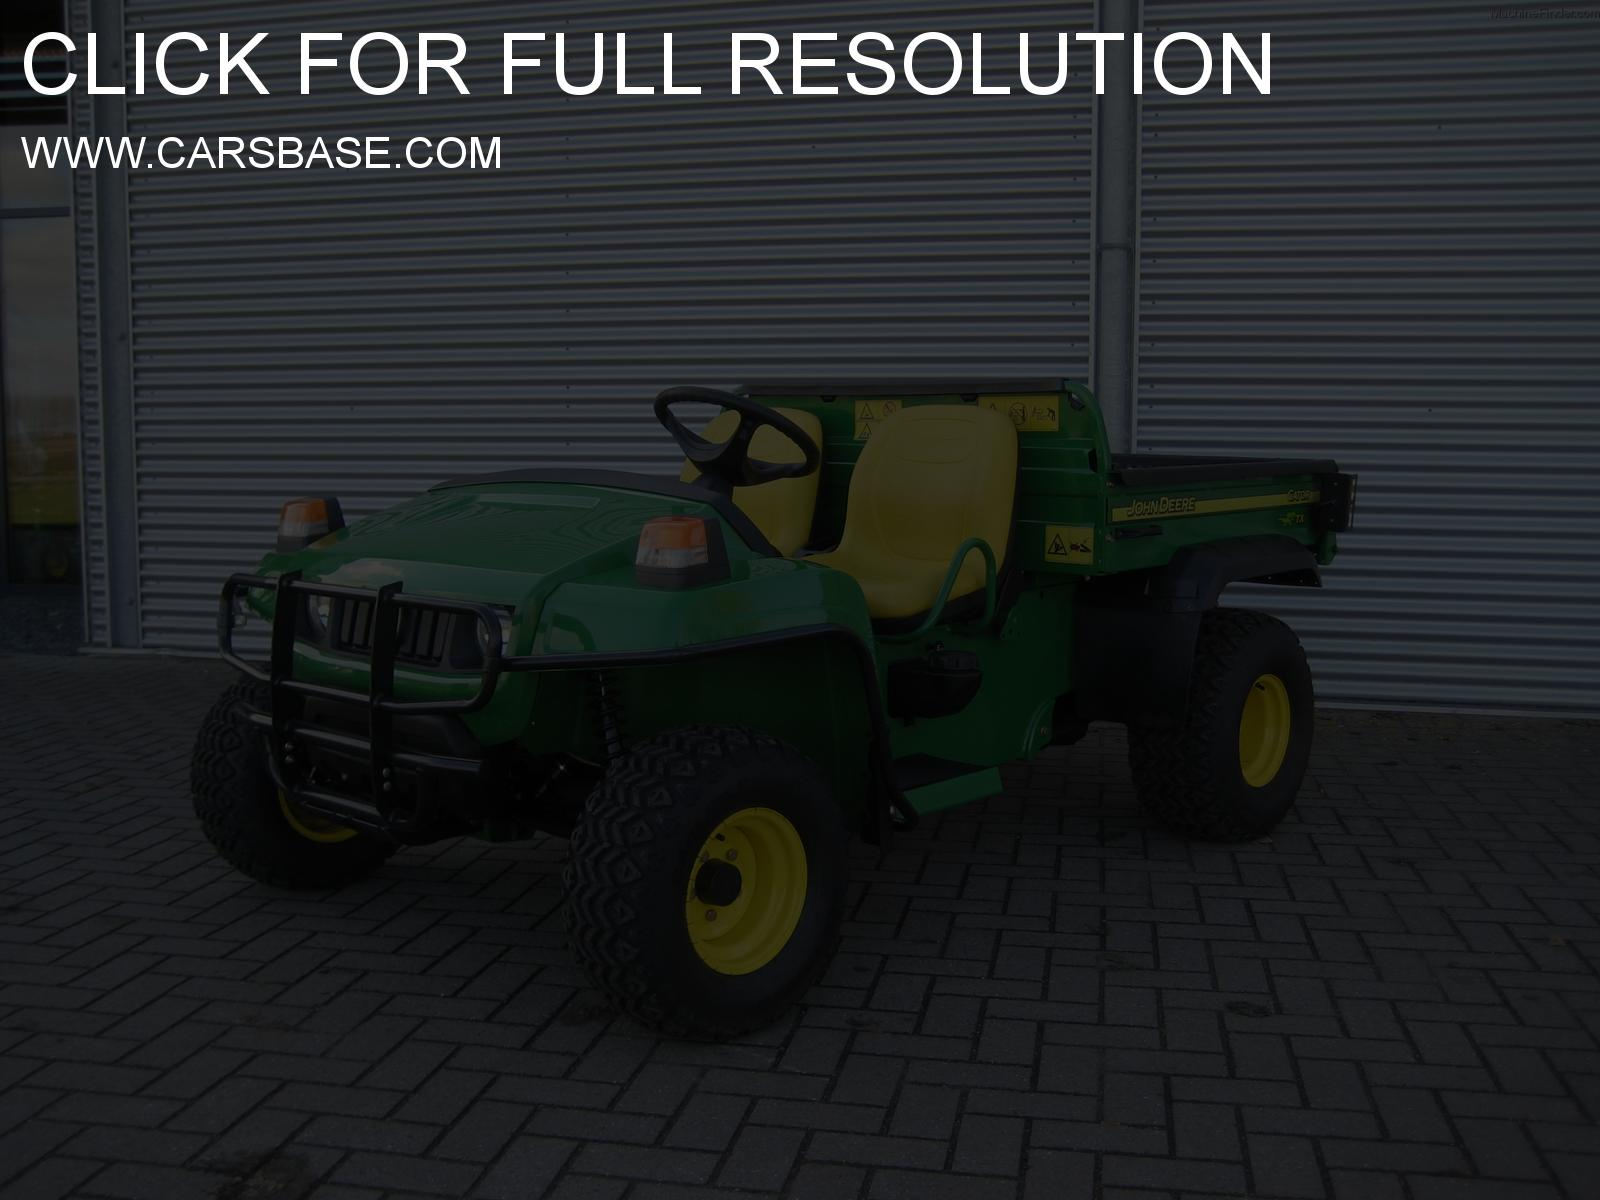 John deere gator photo - 3